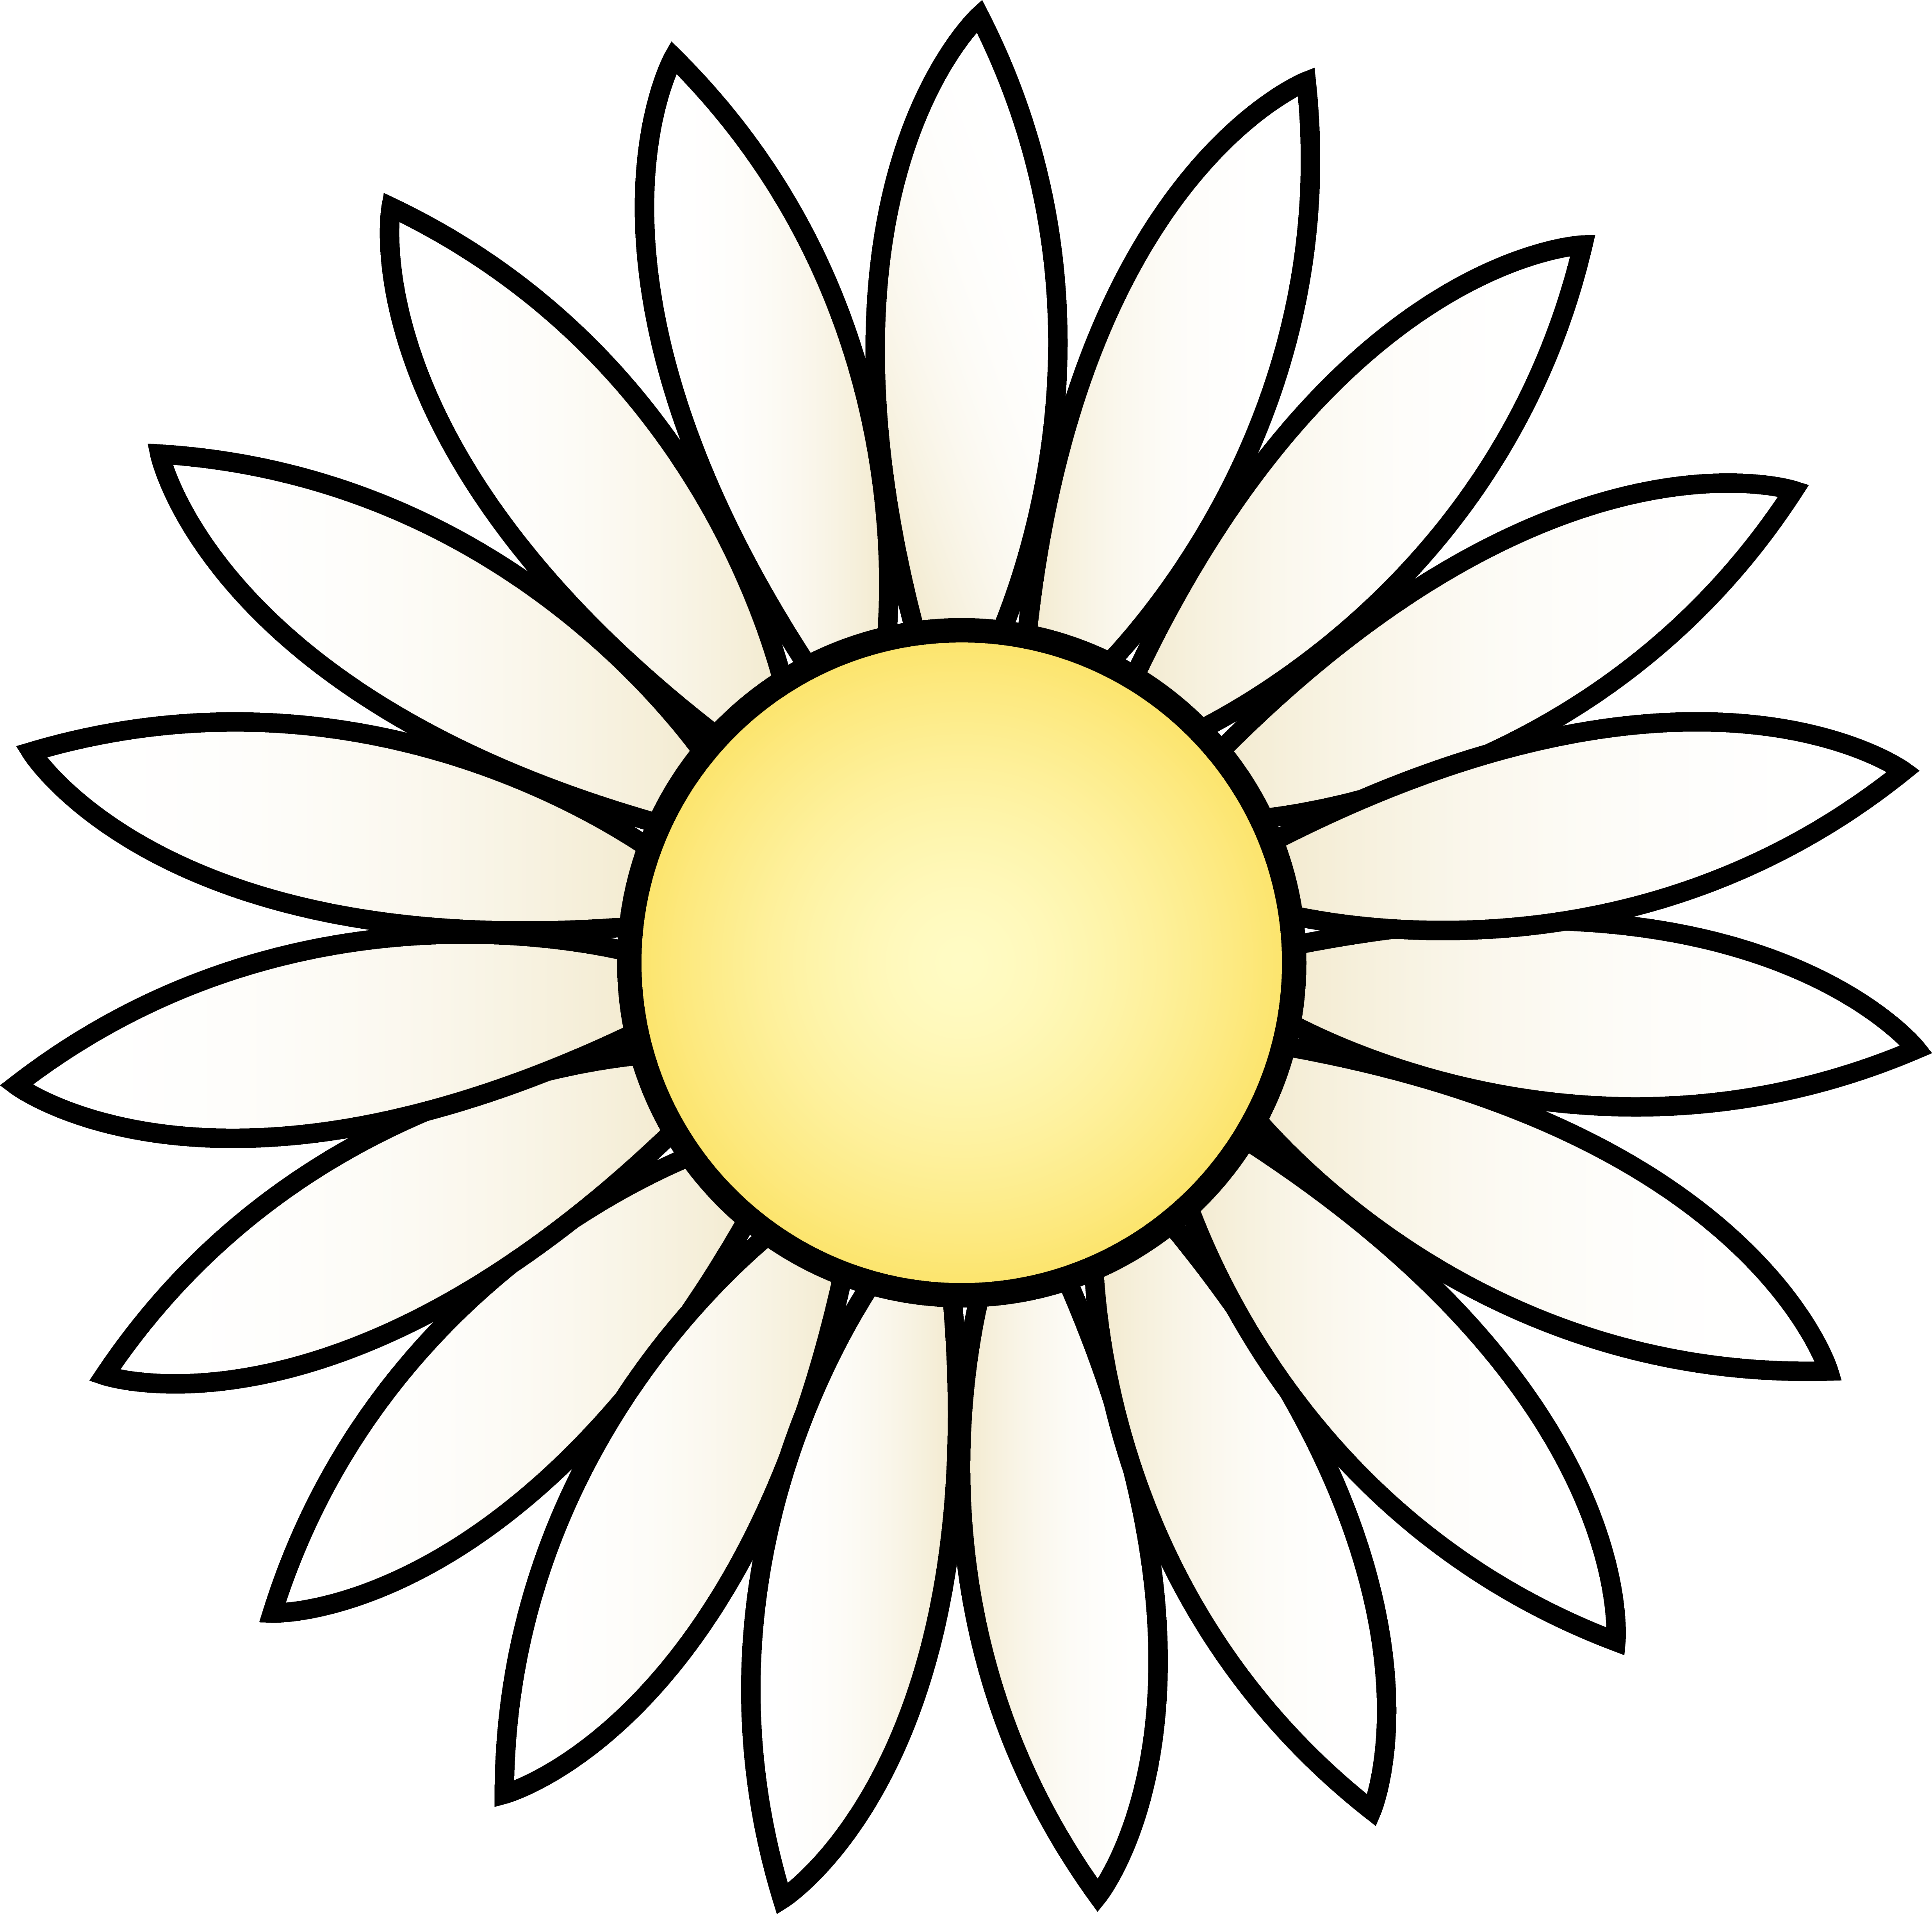 daisy clipart black and white